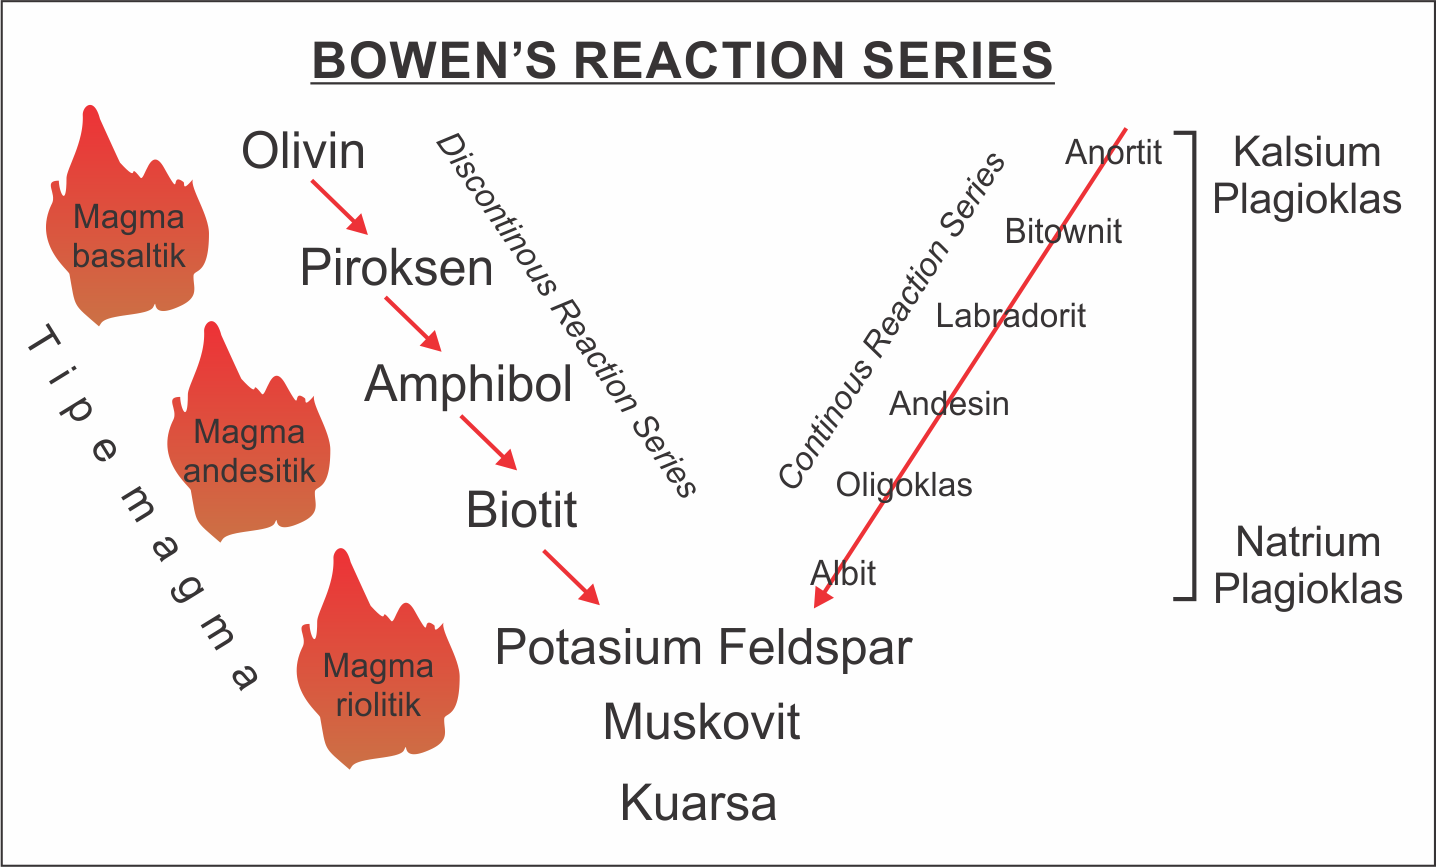 hight resolution of bowen s reaction series diagram 3